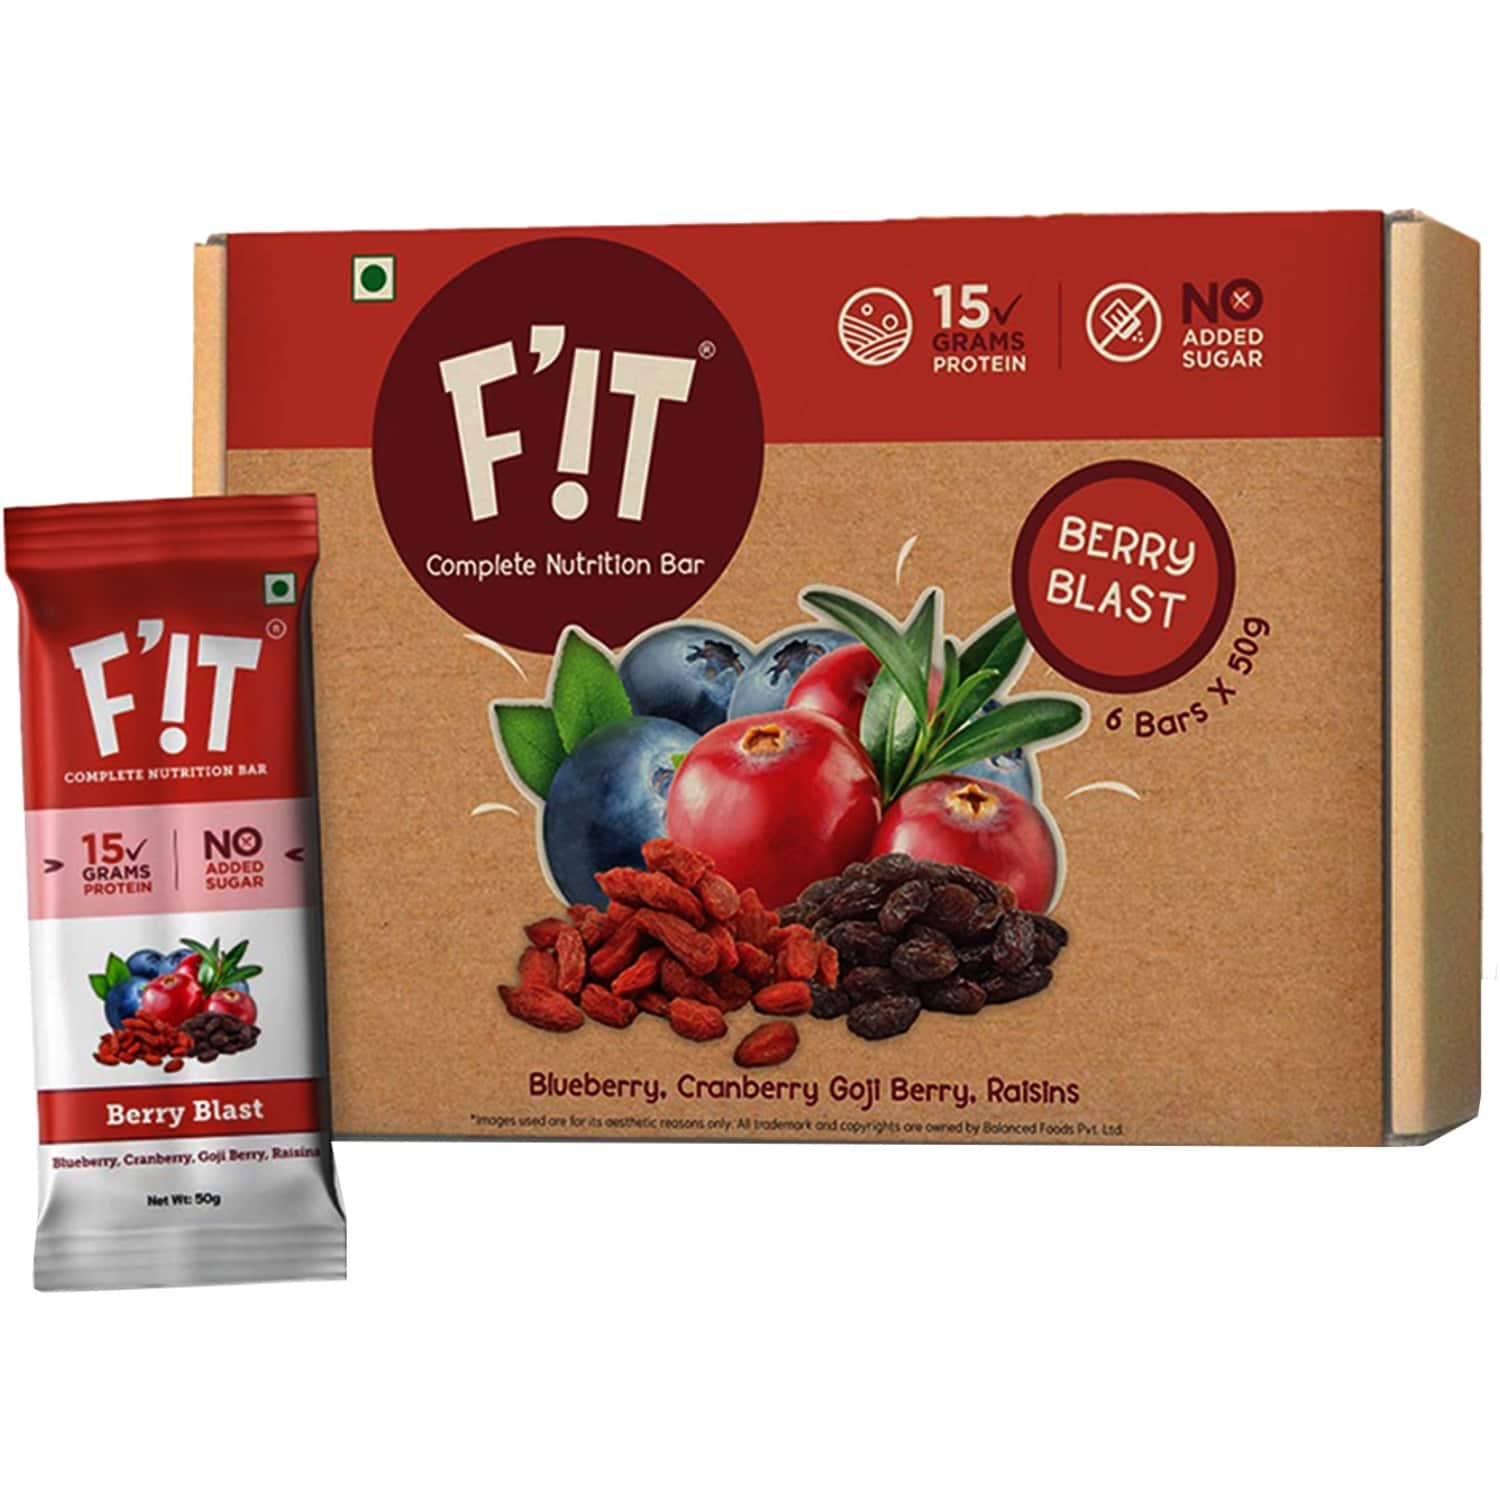 F'it Nutrition Bar - Berry Blast (pack Of 6)